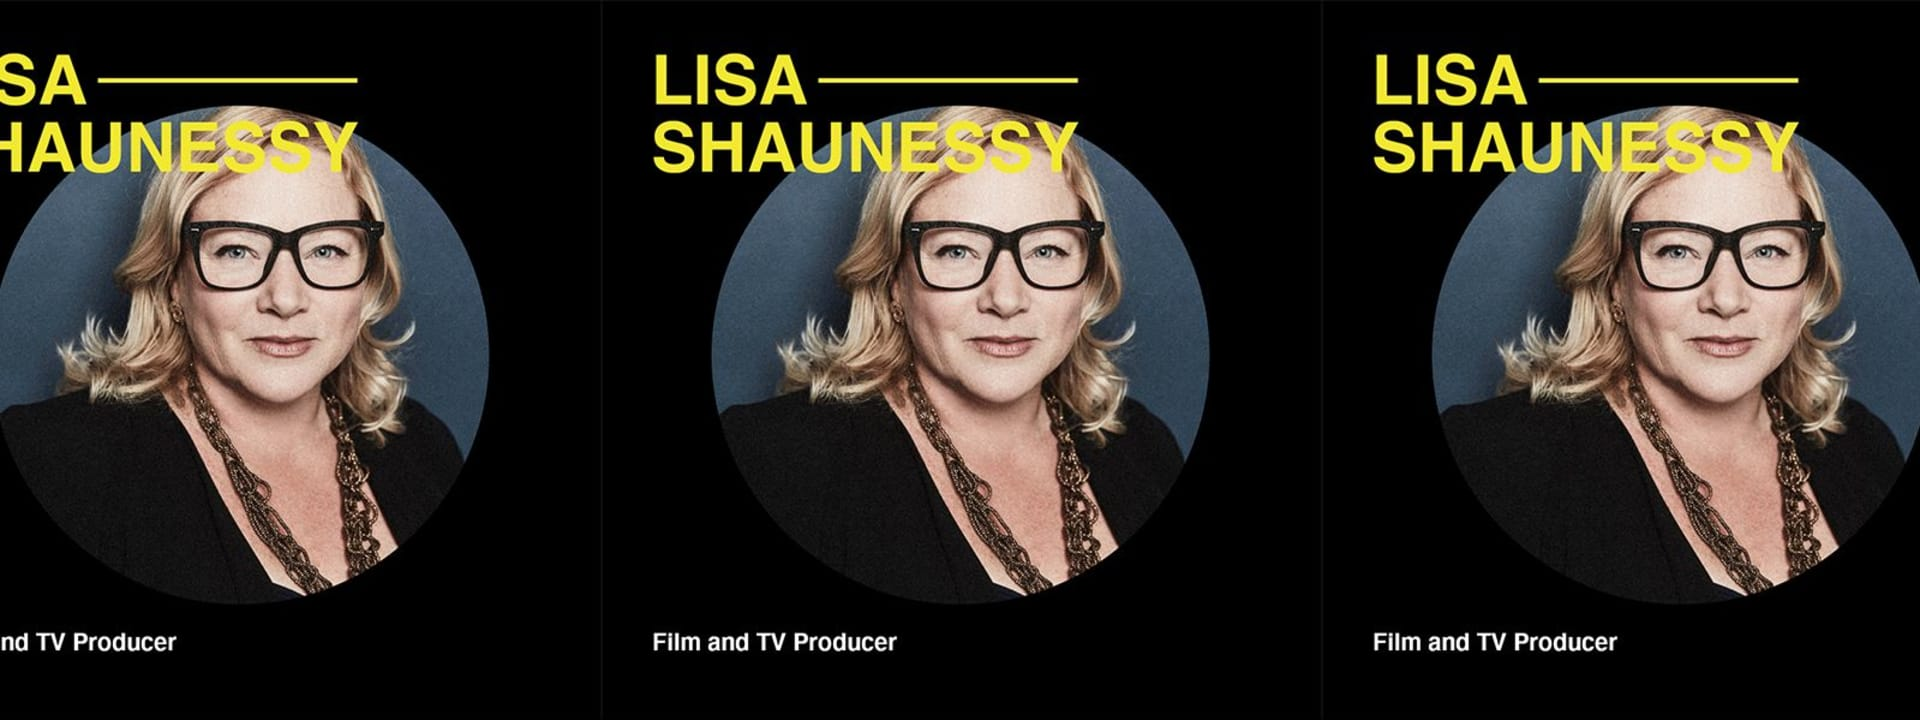 MEET THE ARTIST BY BRAND X LISA Shaunessy